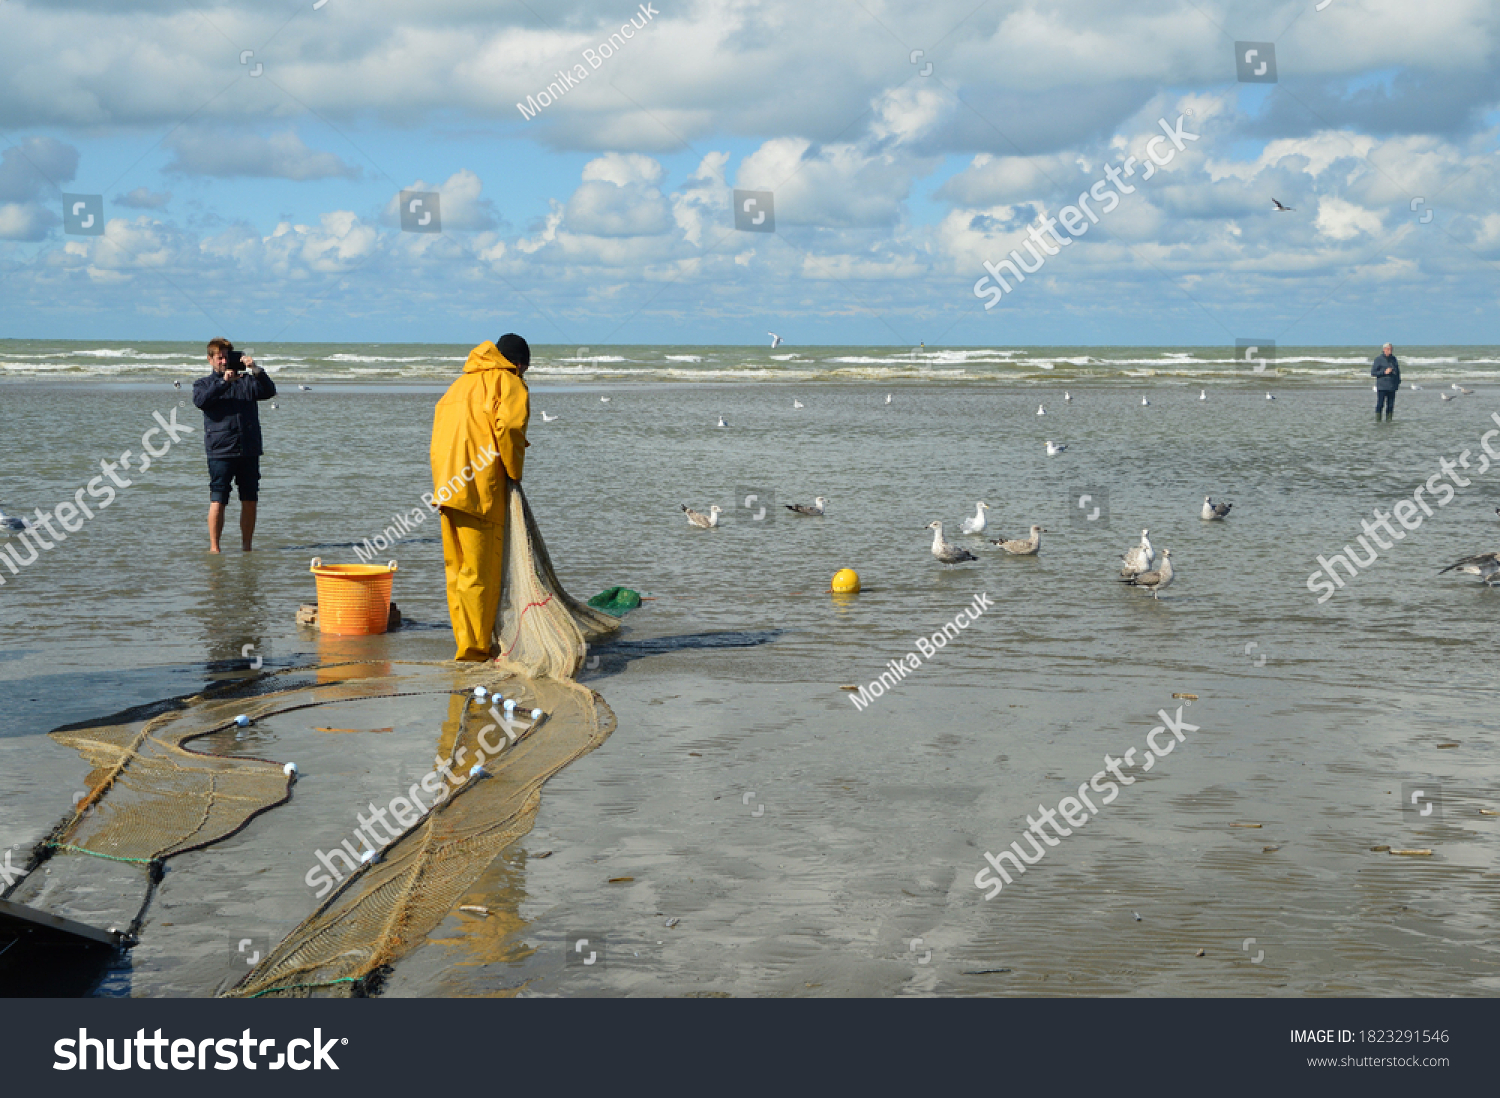 East Duinkerk,Belgium,September 2017, a fisherman looks his equipment